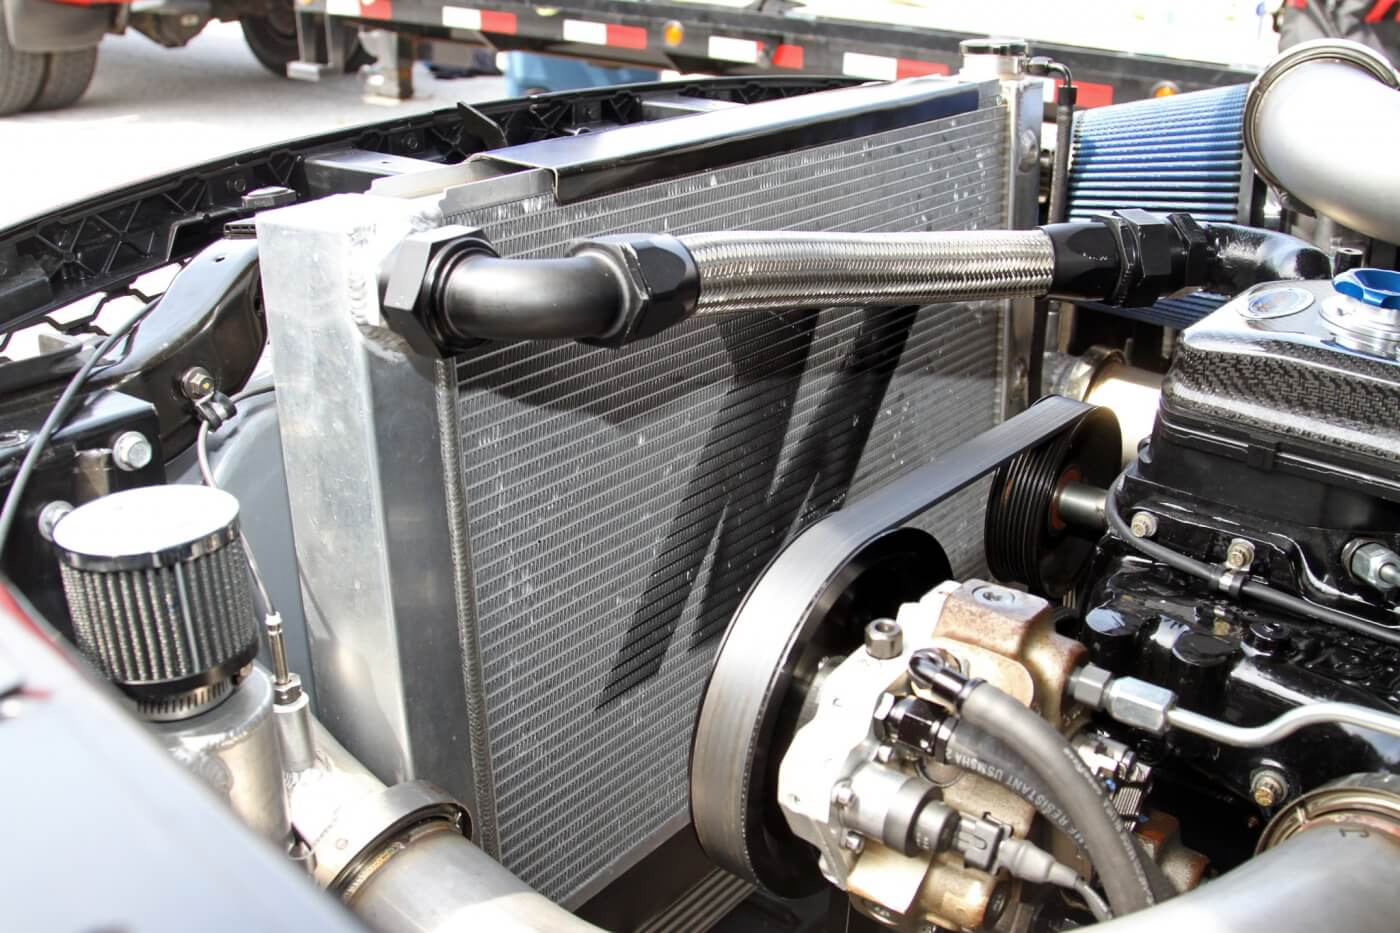 Milliken relies on a Mishimoto aluminum radiator to keep the powerful Cummins cool, as well as a Mishimoto intercooler to keep the intake charge cool when the truck reaches top speeds.